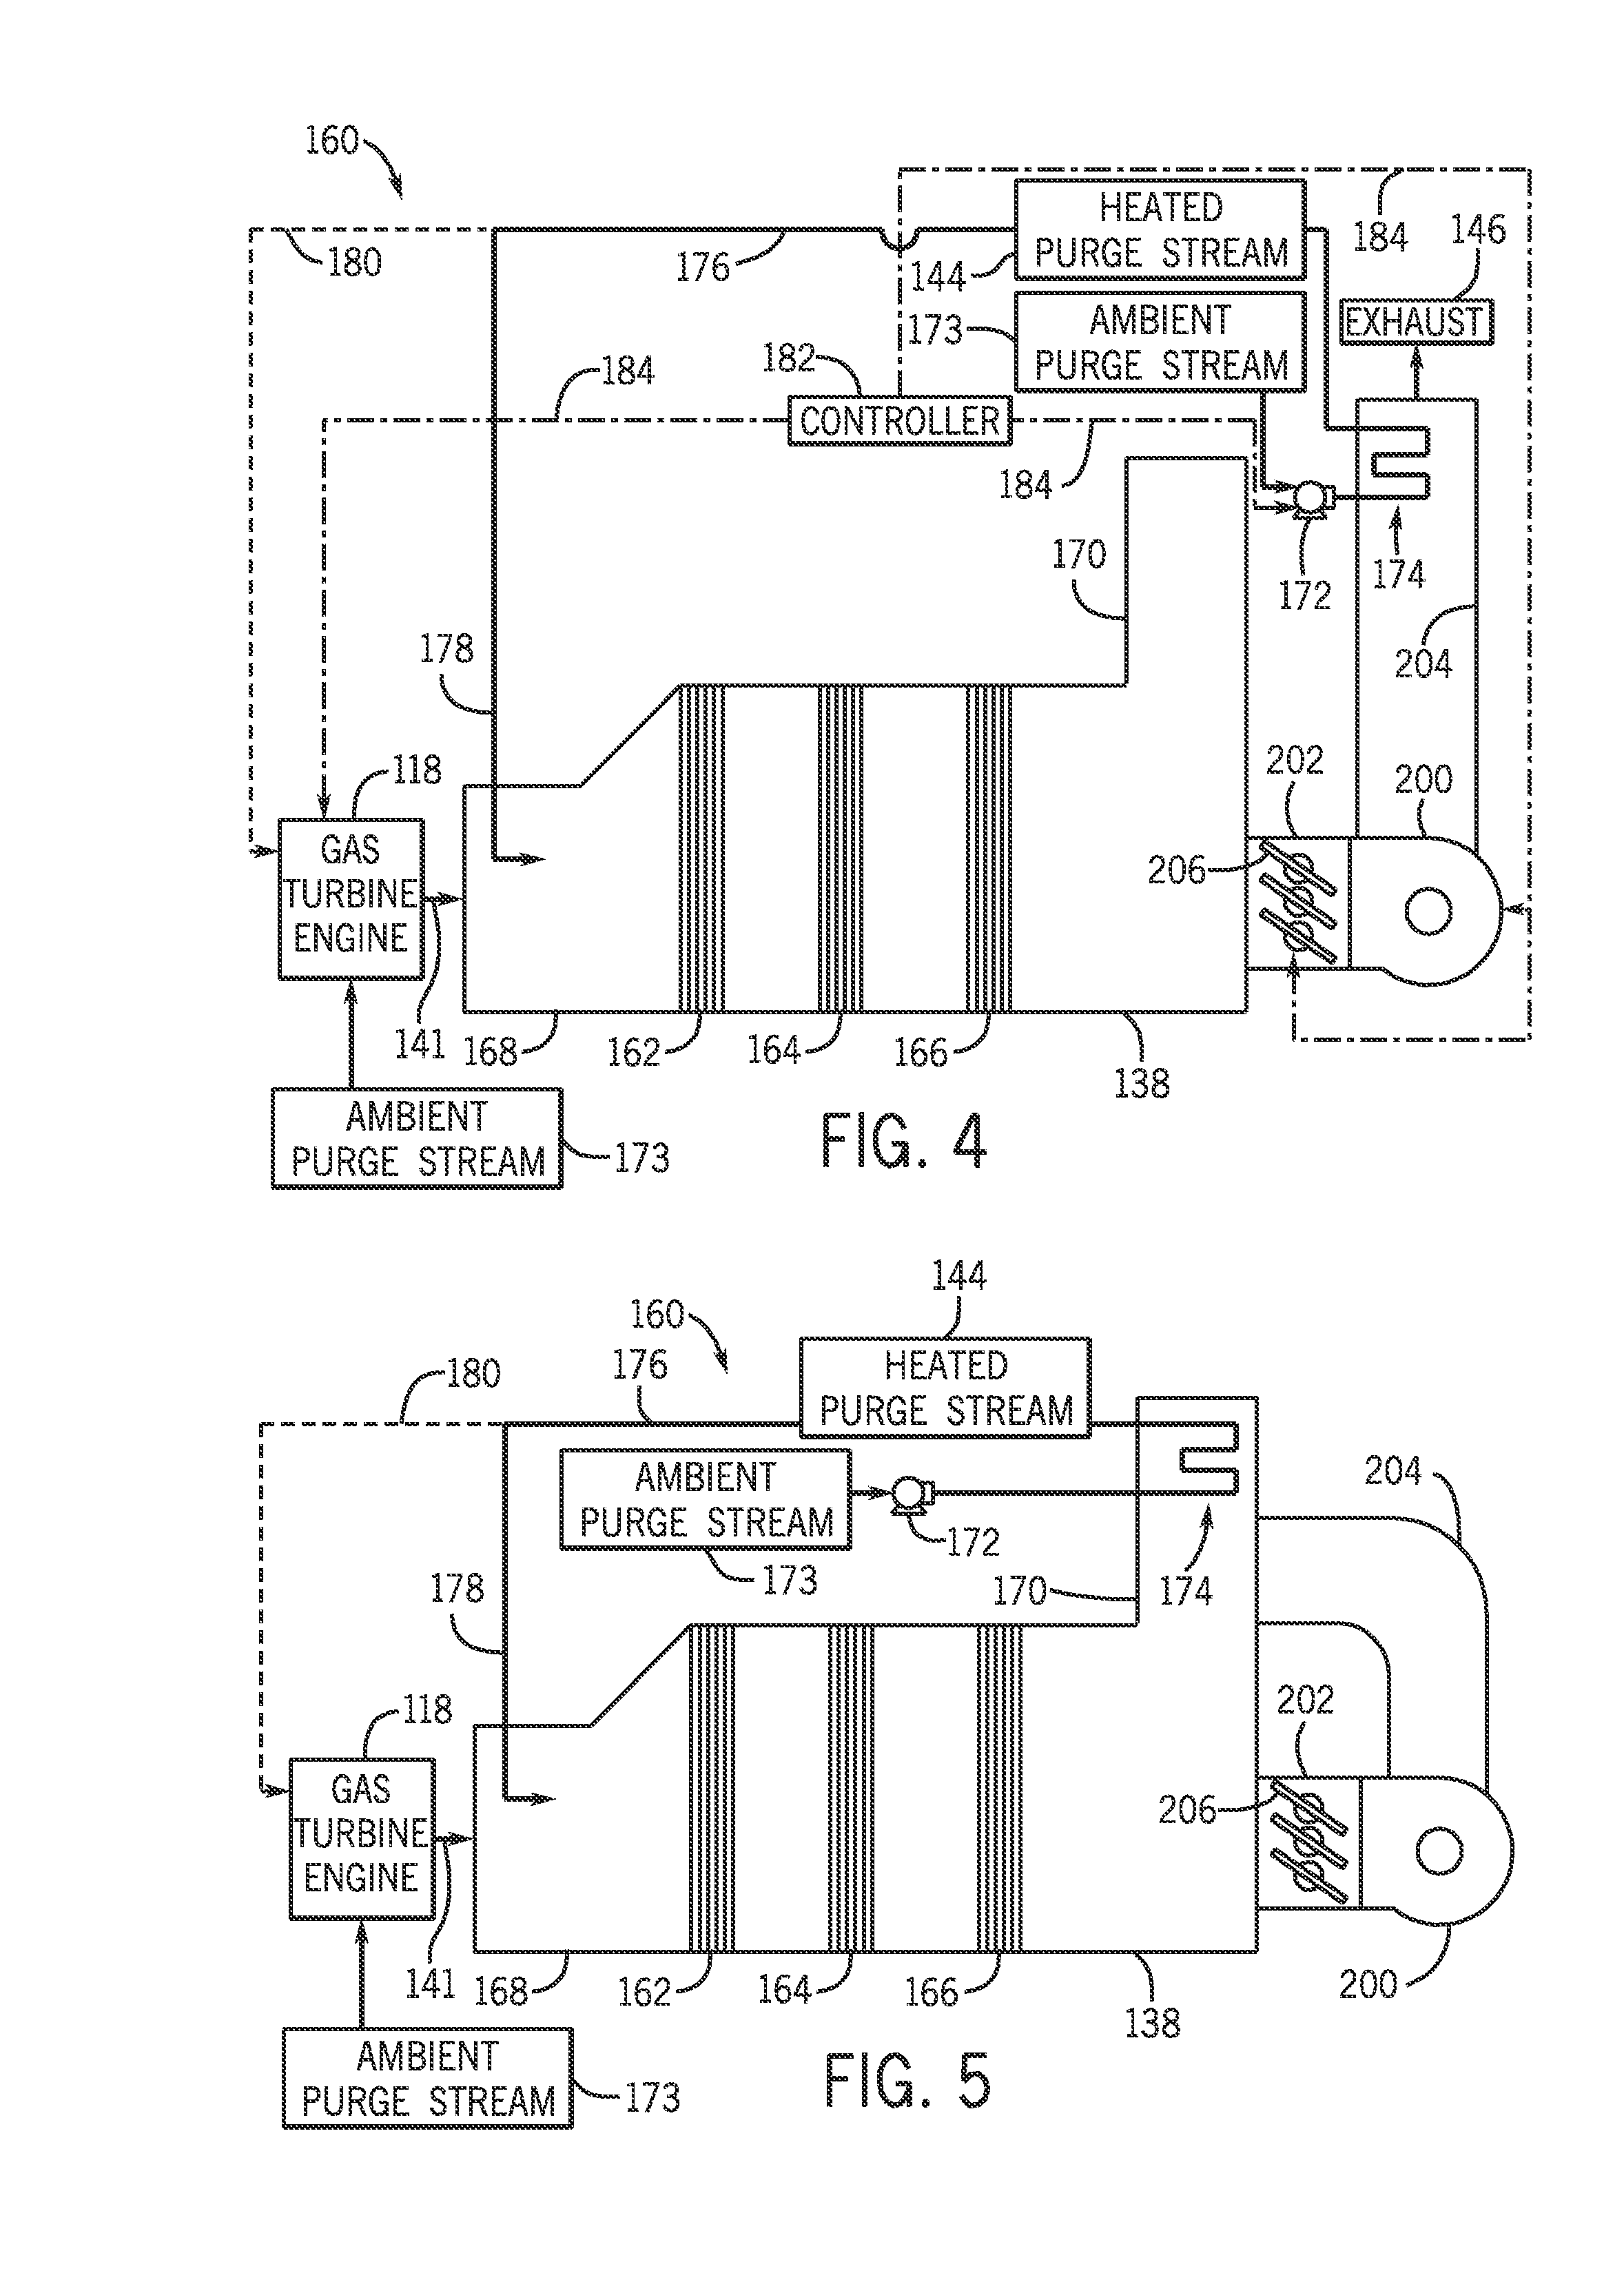 Patent US System and method for operating heat